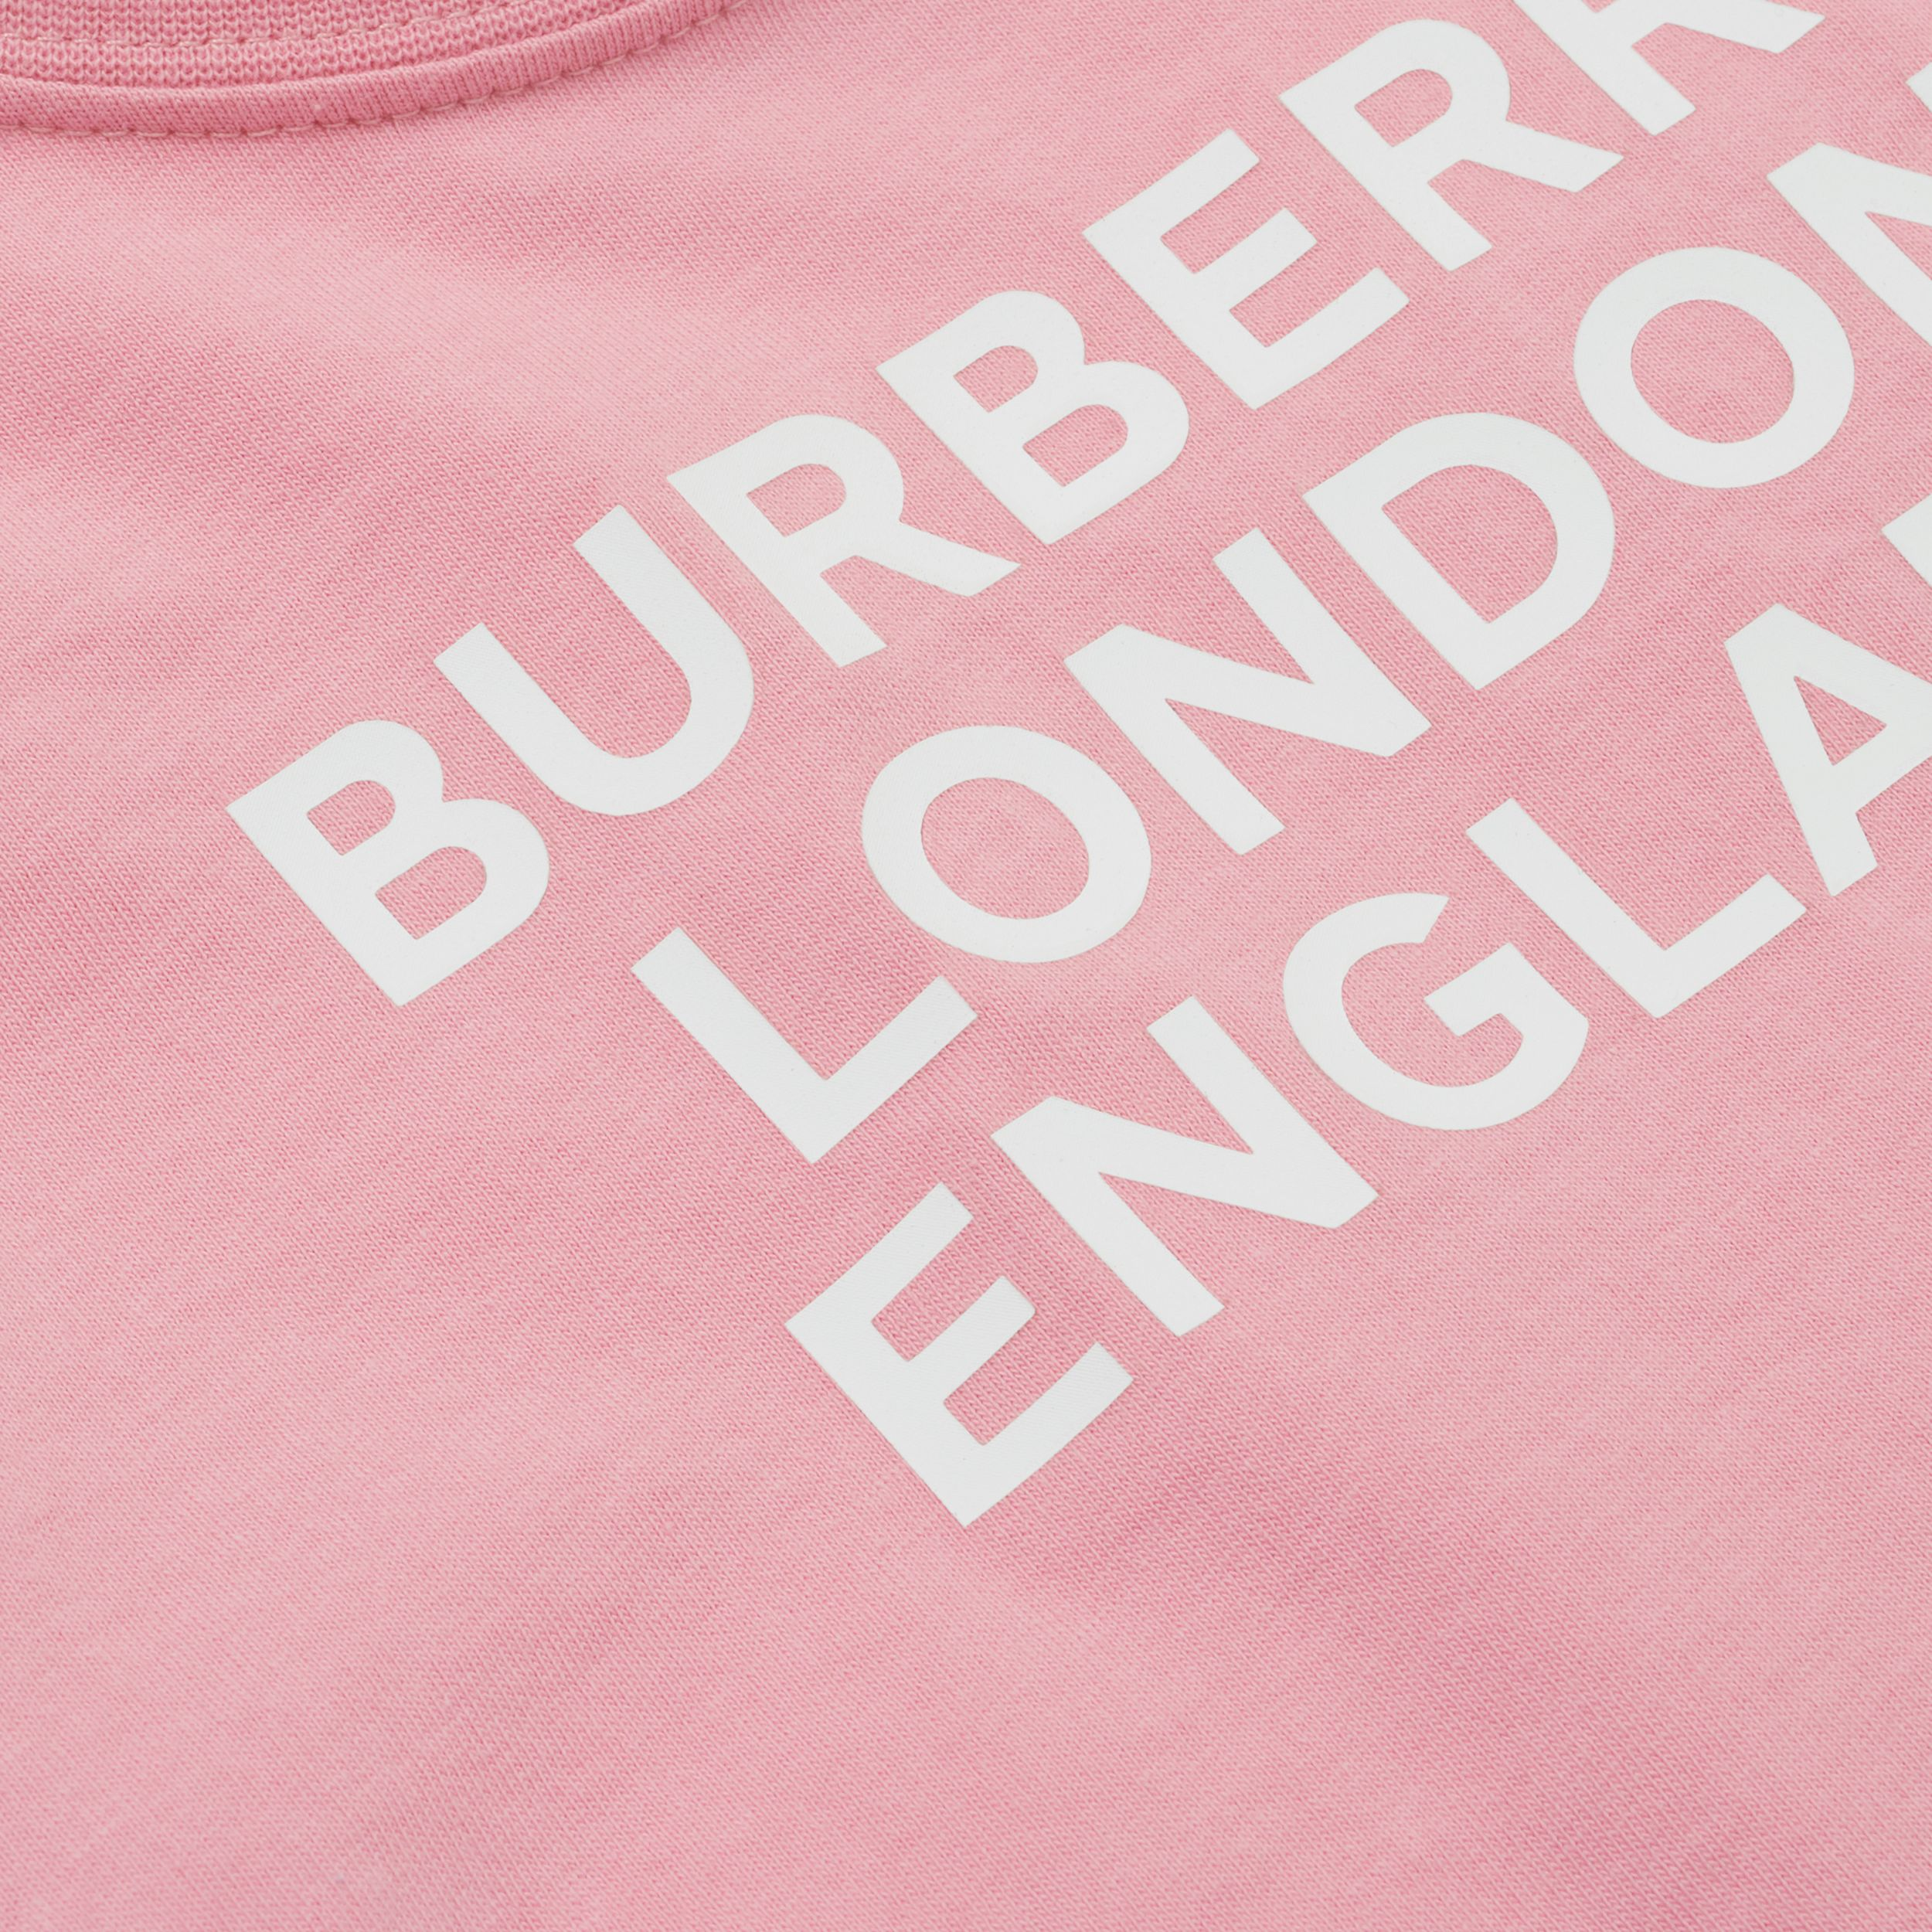 Logo Print Cotton T-shirt in Candy Pink - Children | Burberry - 2